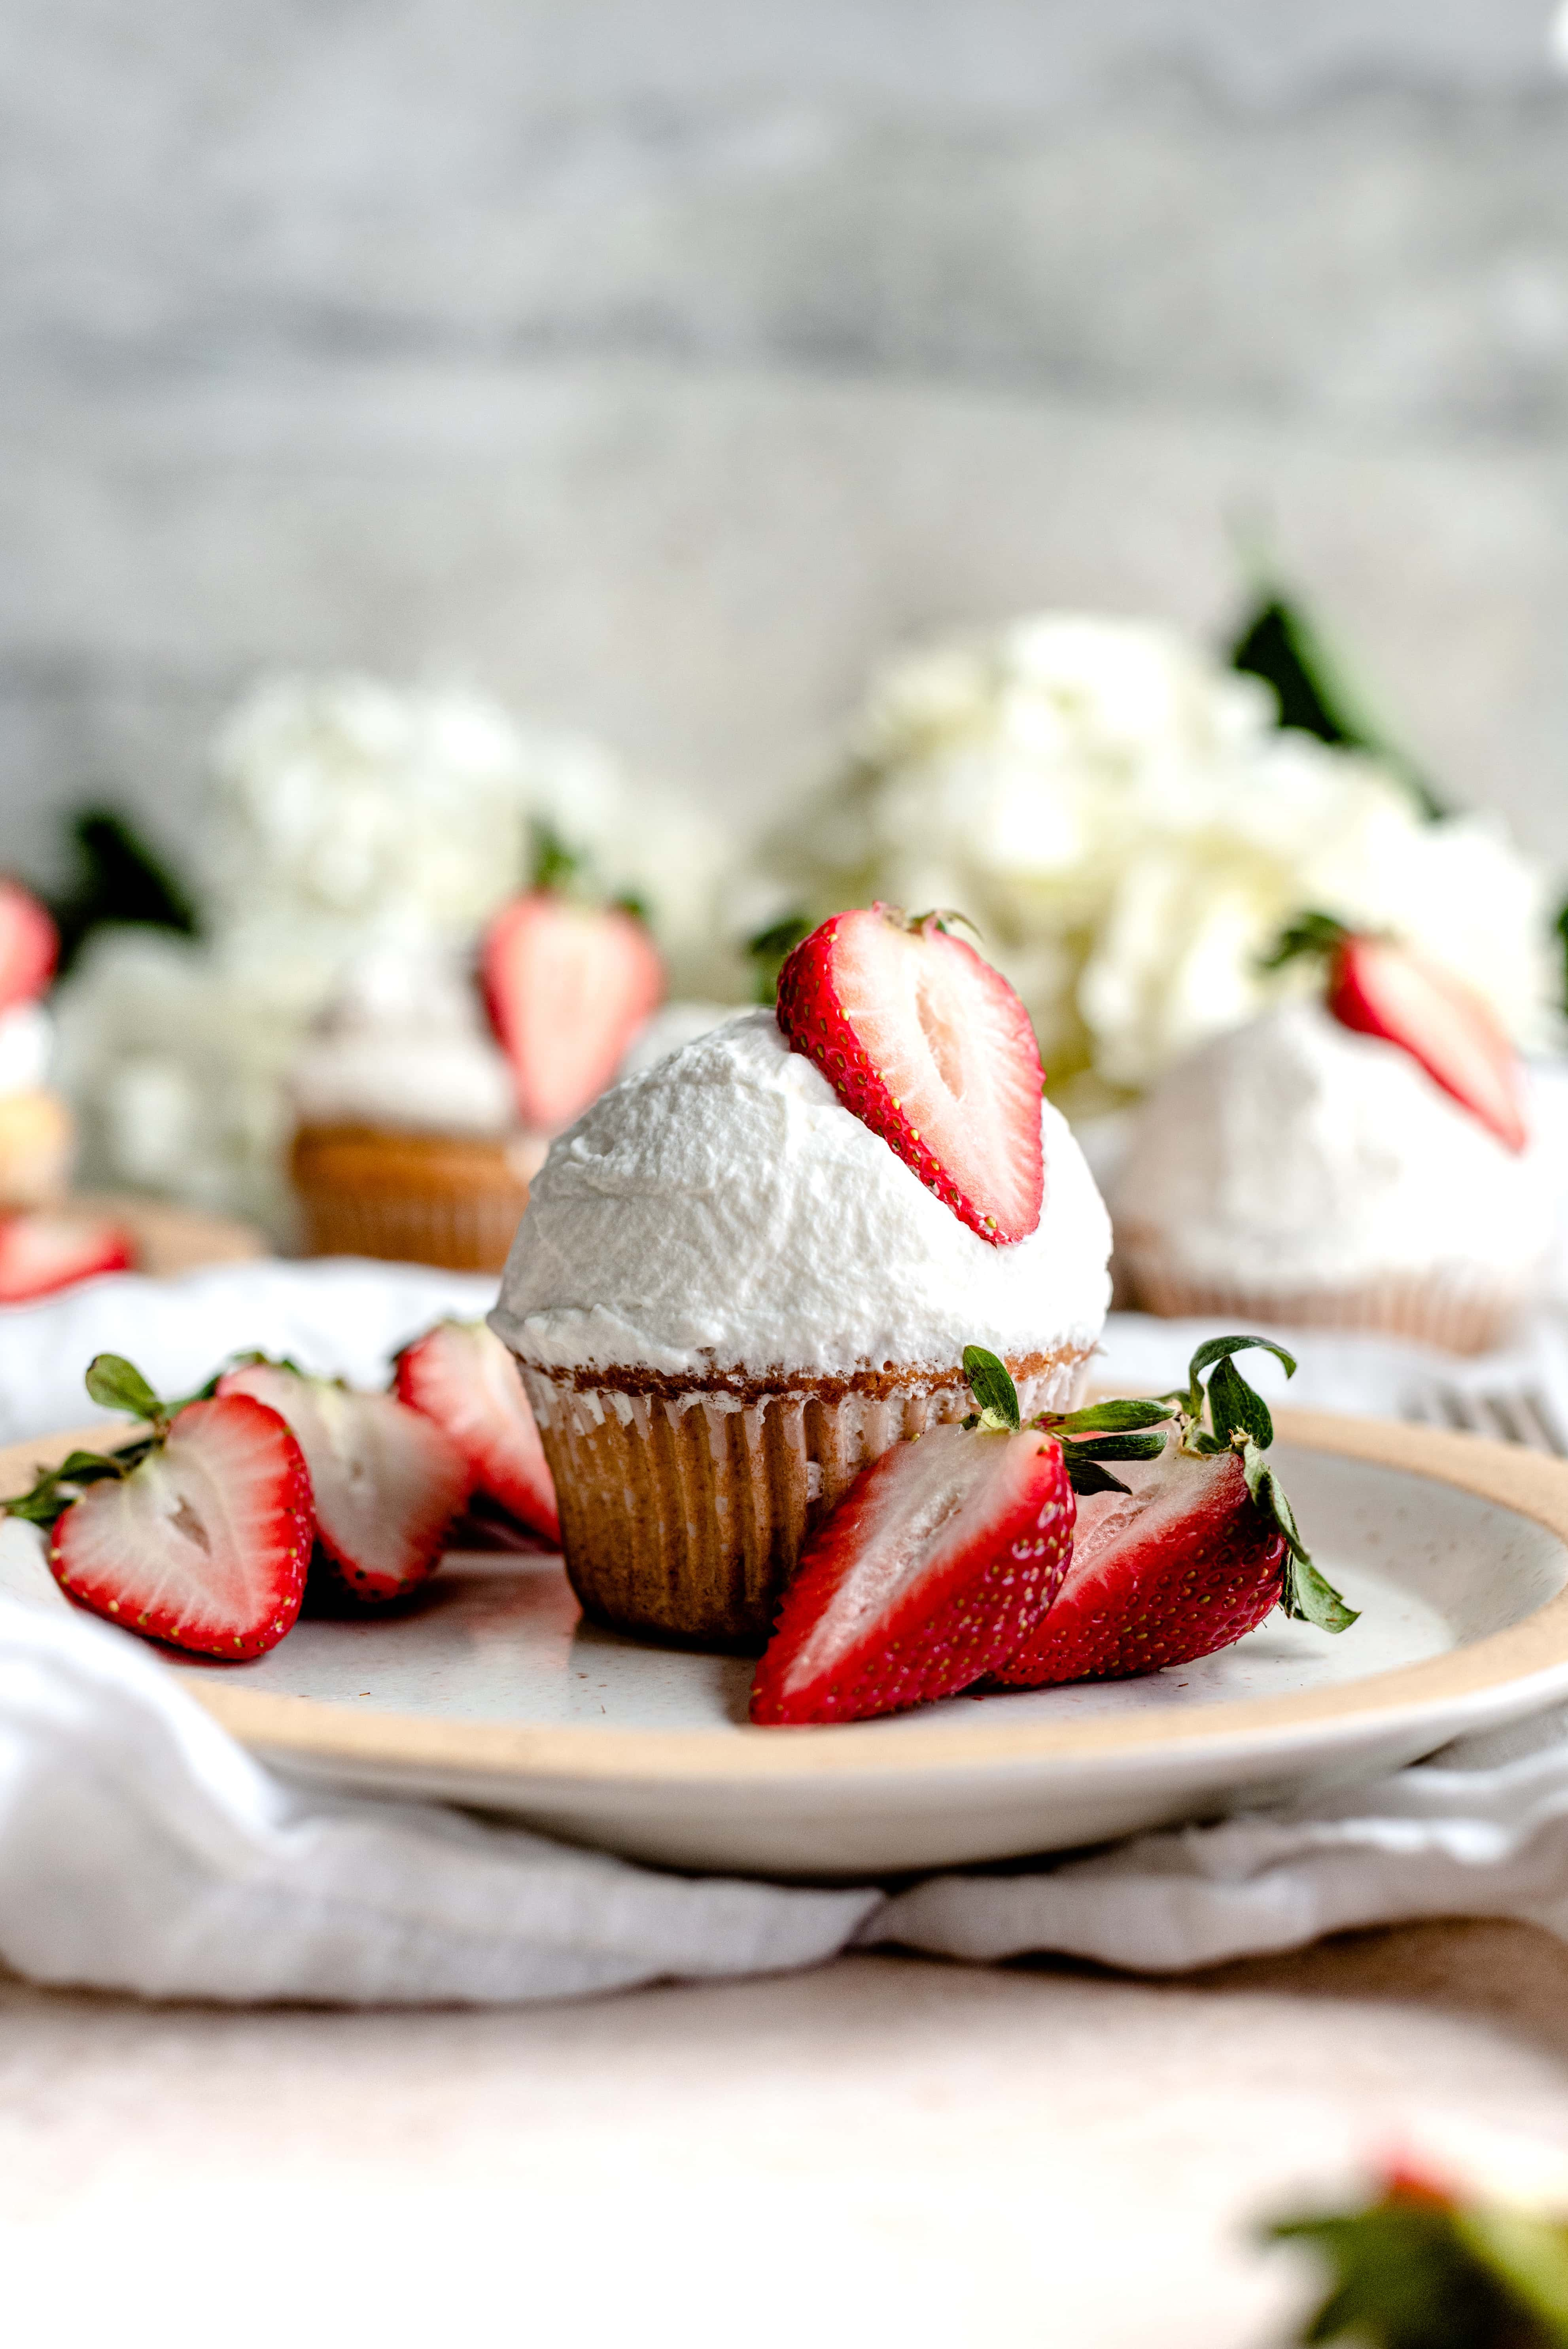 Strawberry Shortcake Cupcake on a plate with fresh strawberries